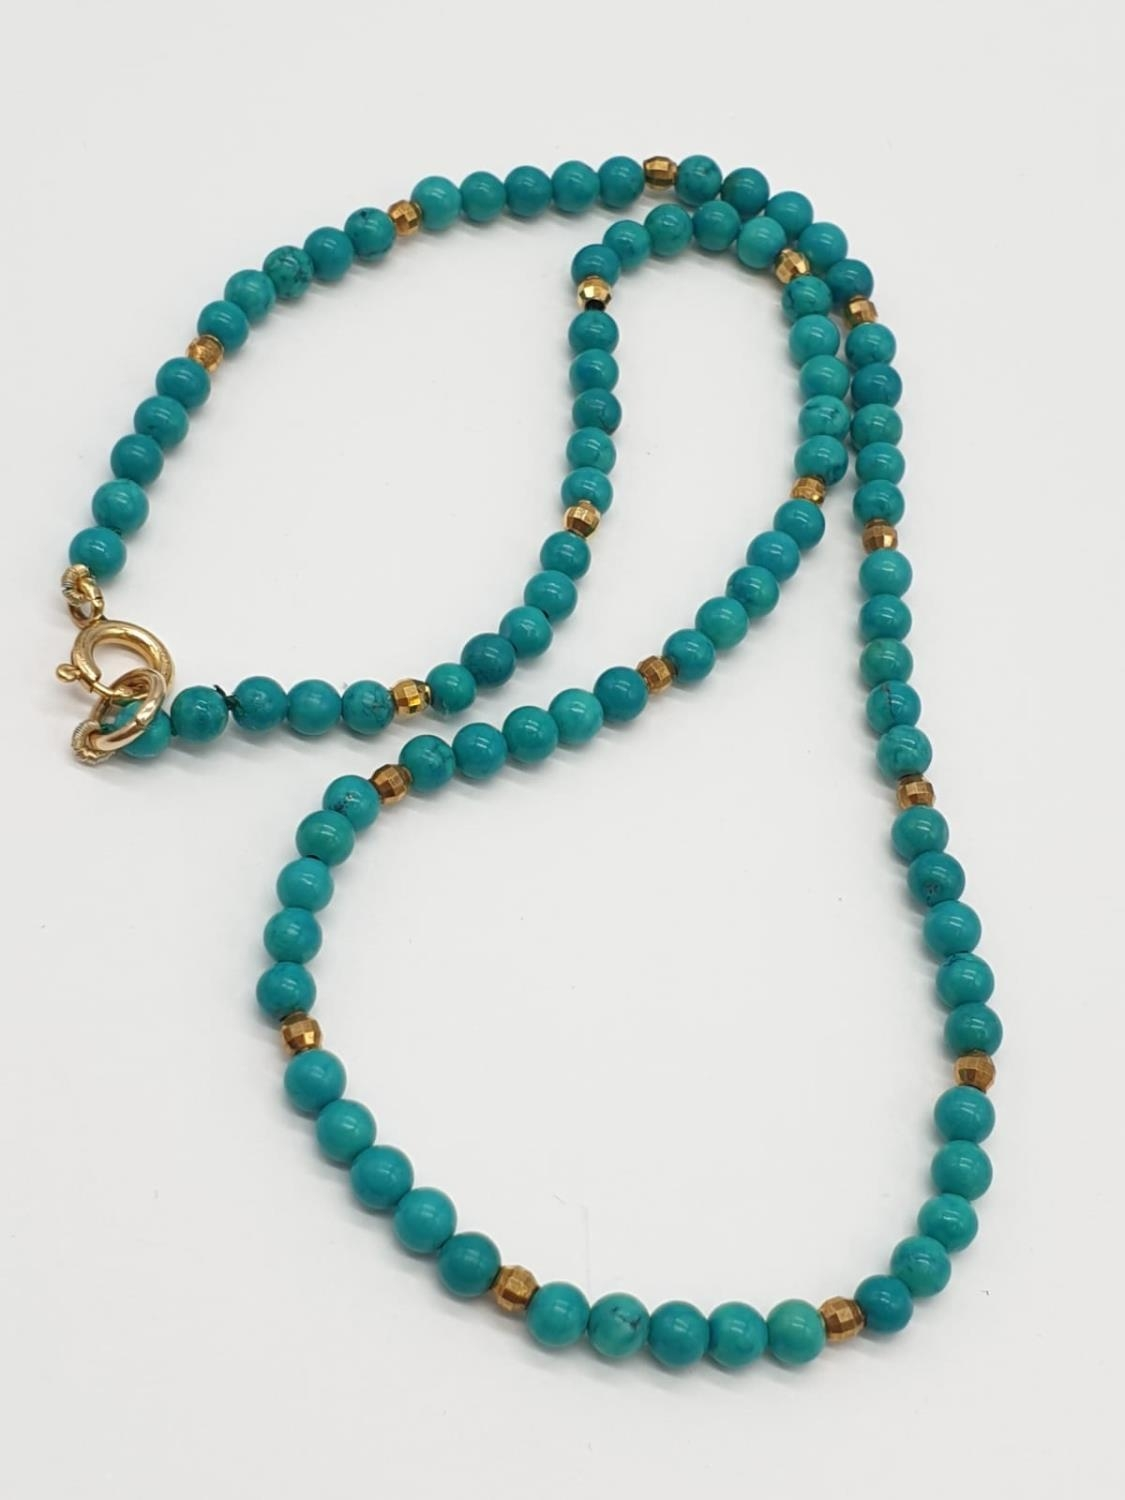 Turquoise and 9ct Gold NECKLACE. 10g 40cm - Image 2 of 5